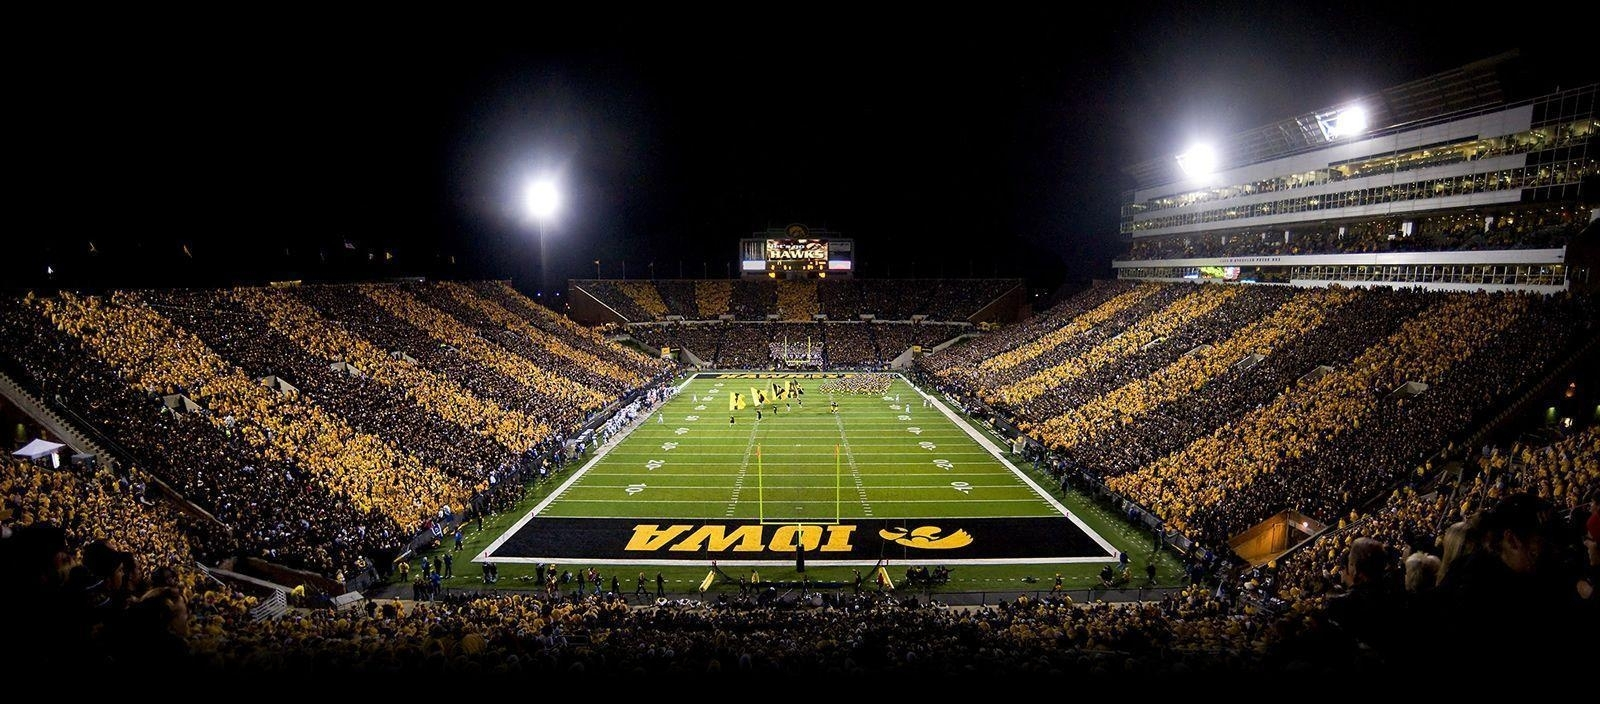 iowa hawkeyes wallpapers - wallpaper cave